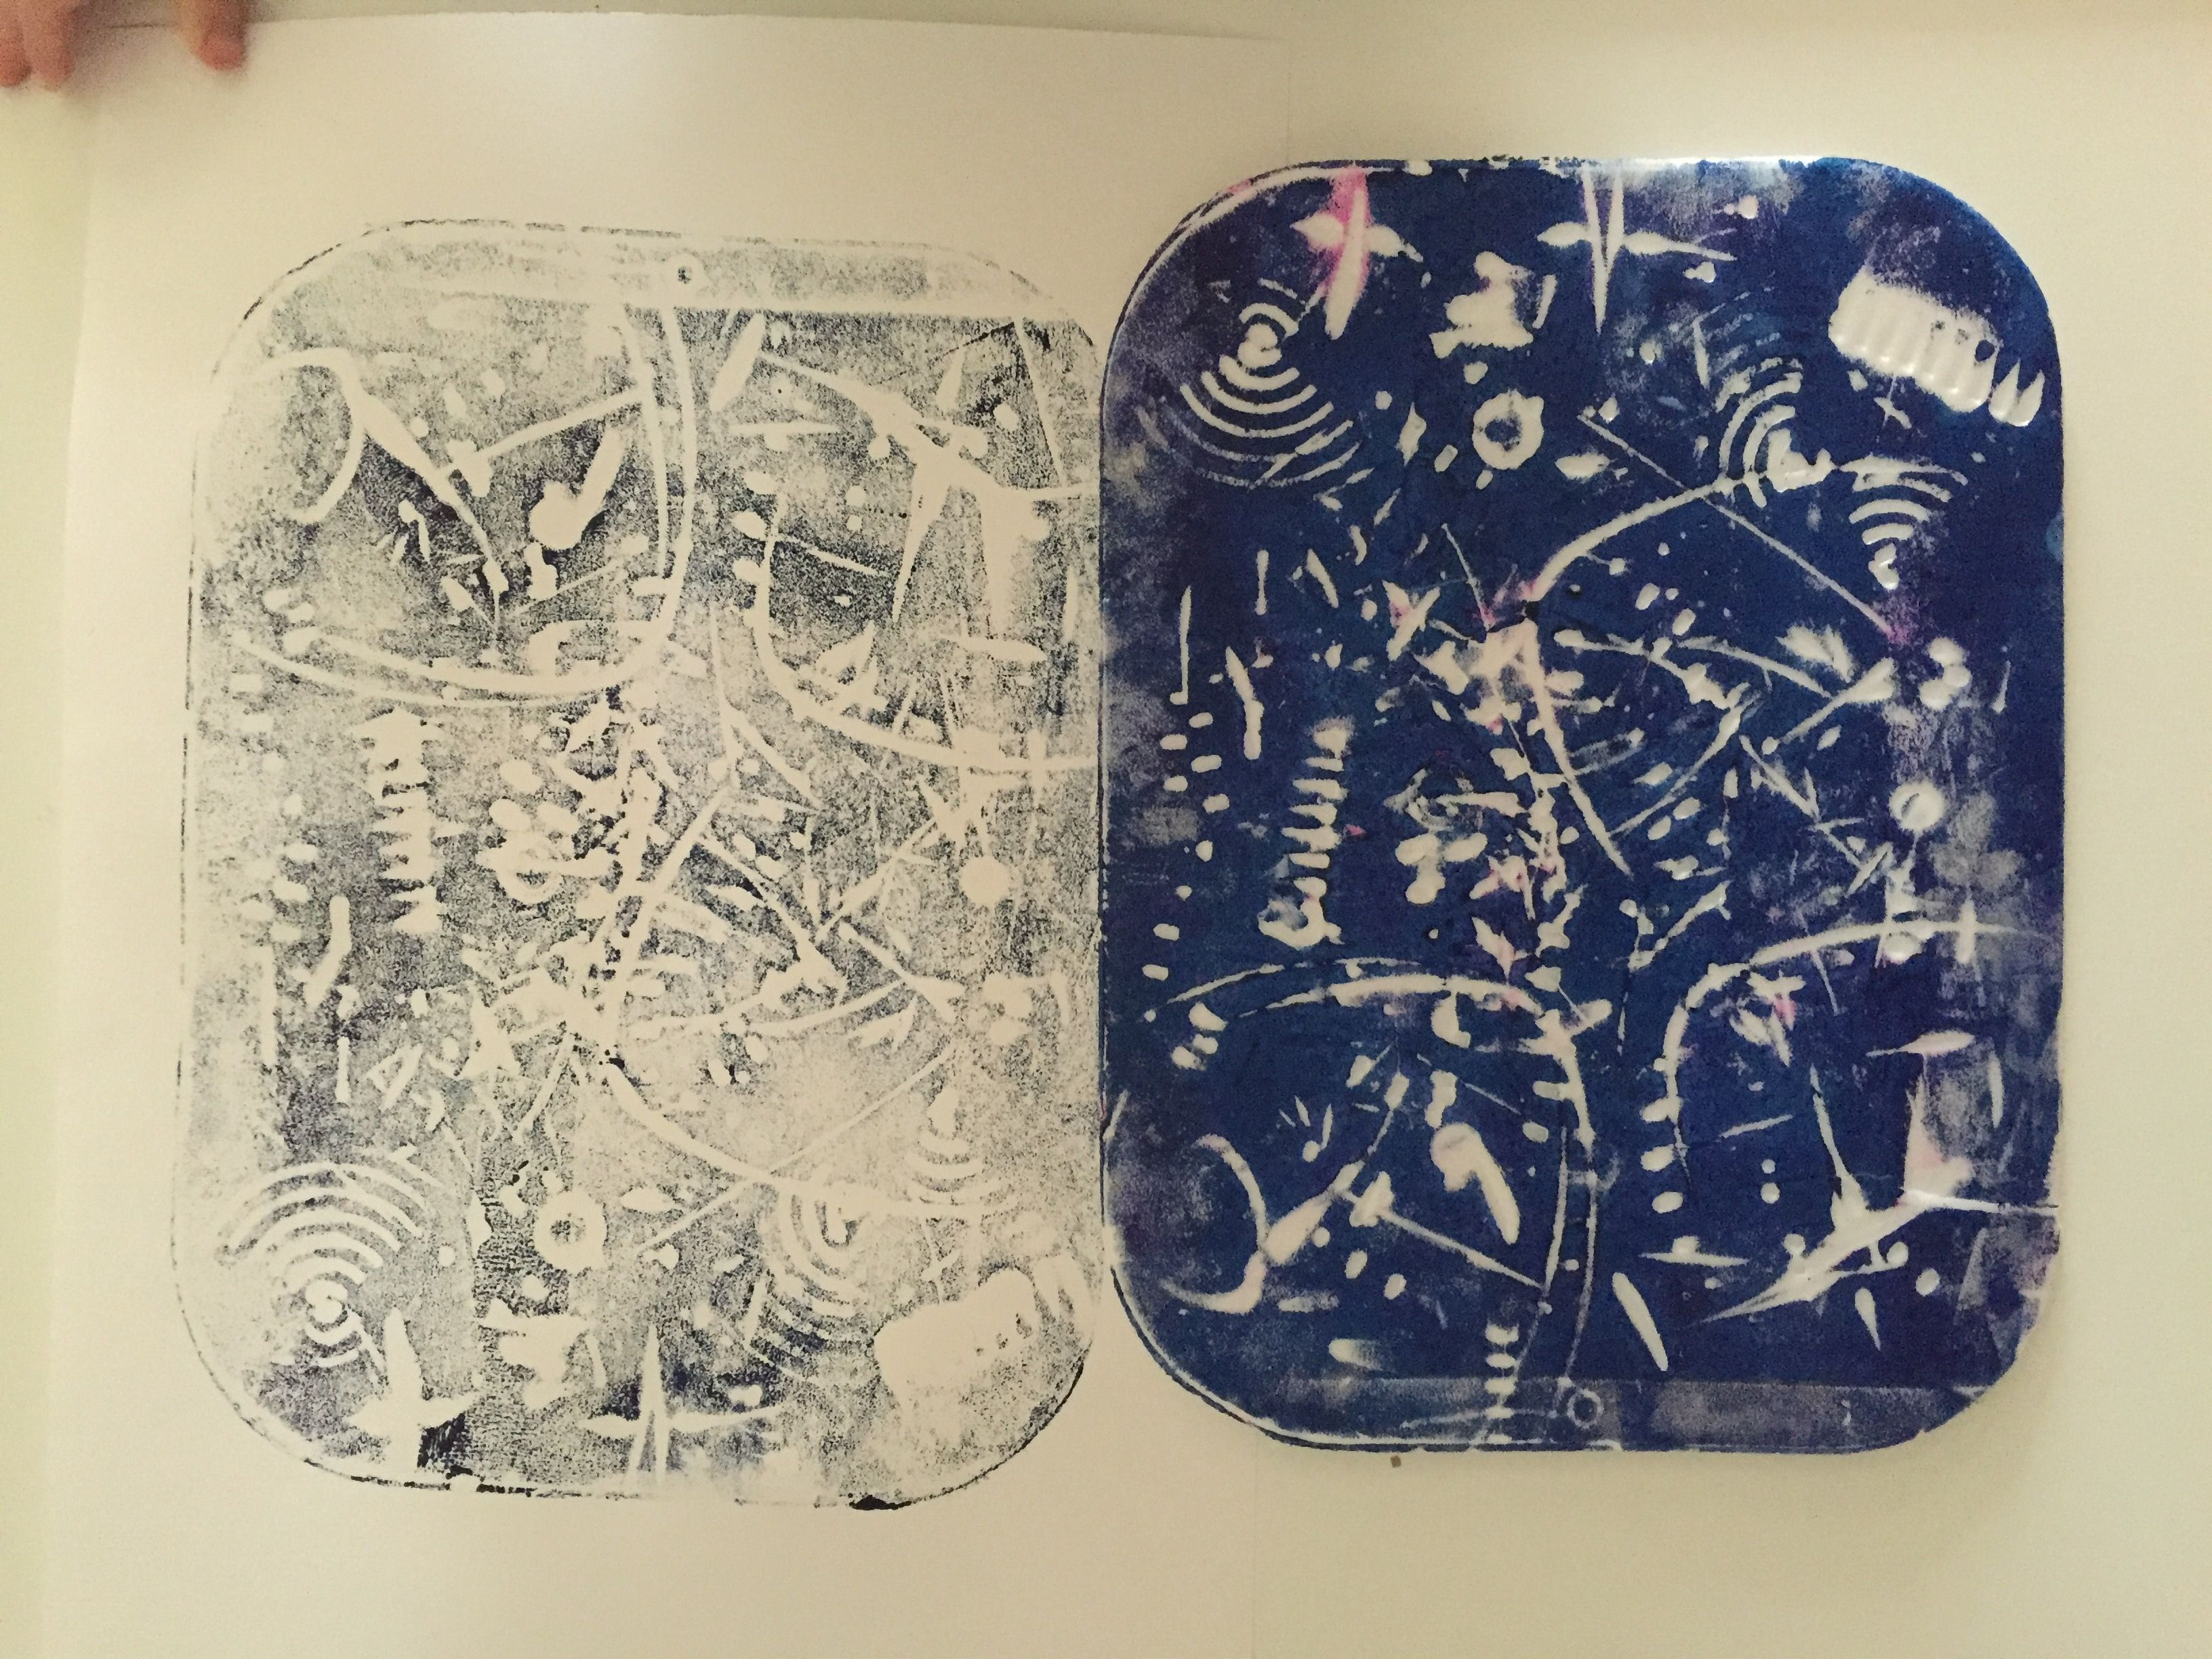 Kitchen utensils drawing for kids - Mono Printing Using Polystyrene From A Pizza Art Ideas For Toddlers We Used Kitchen